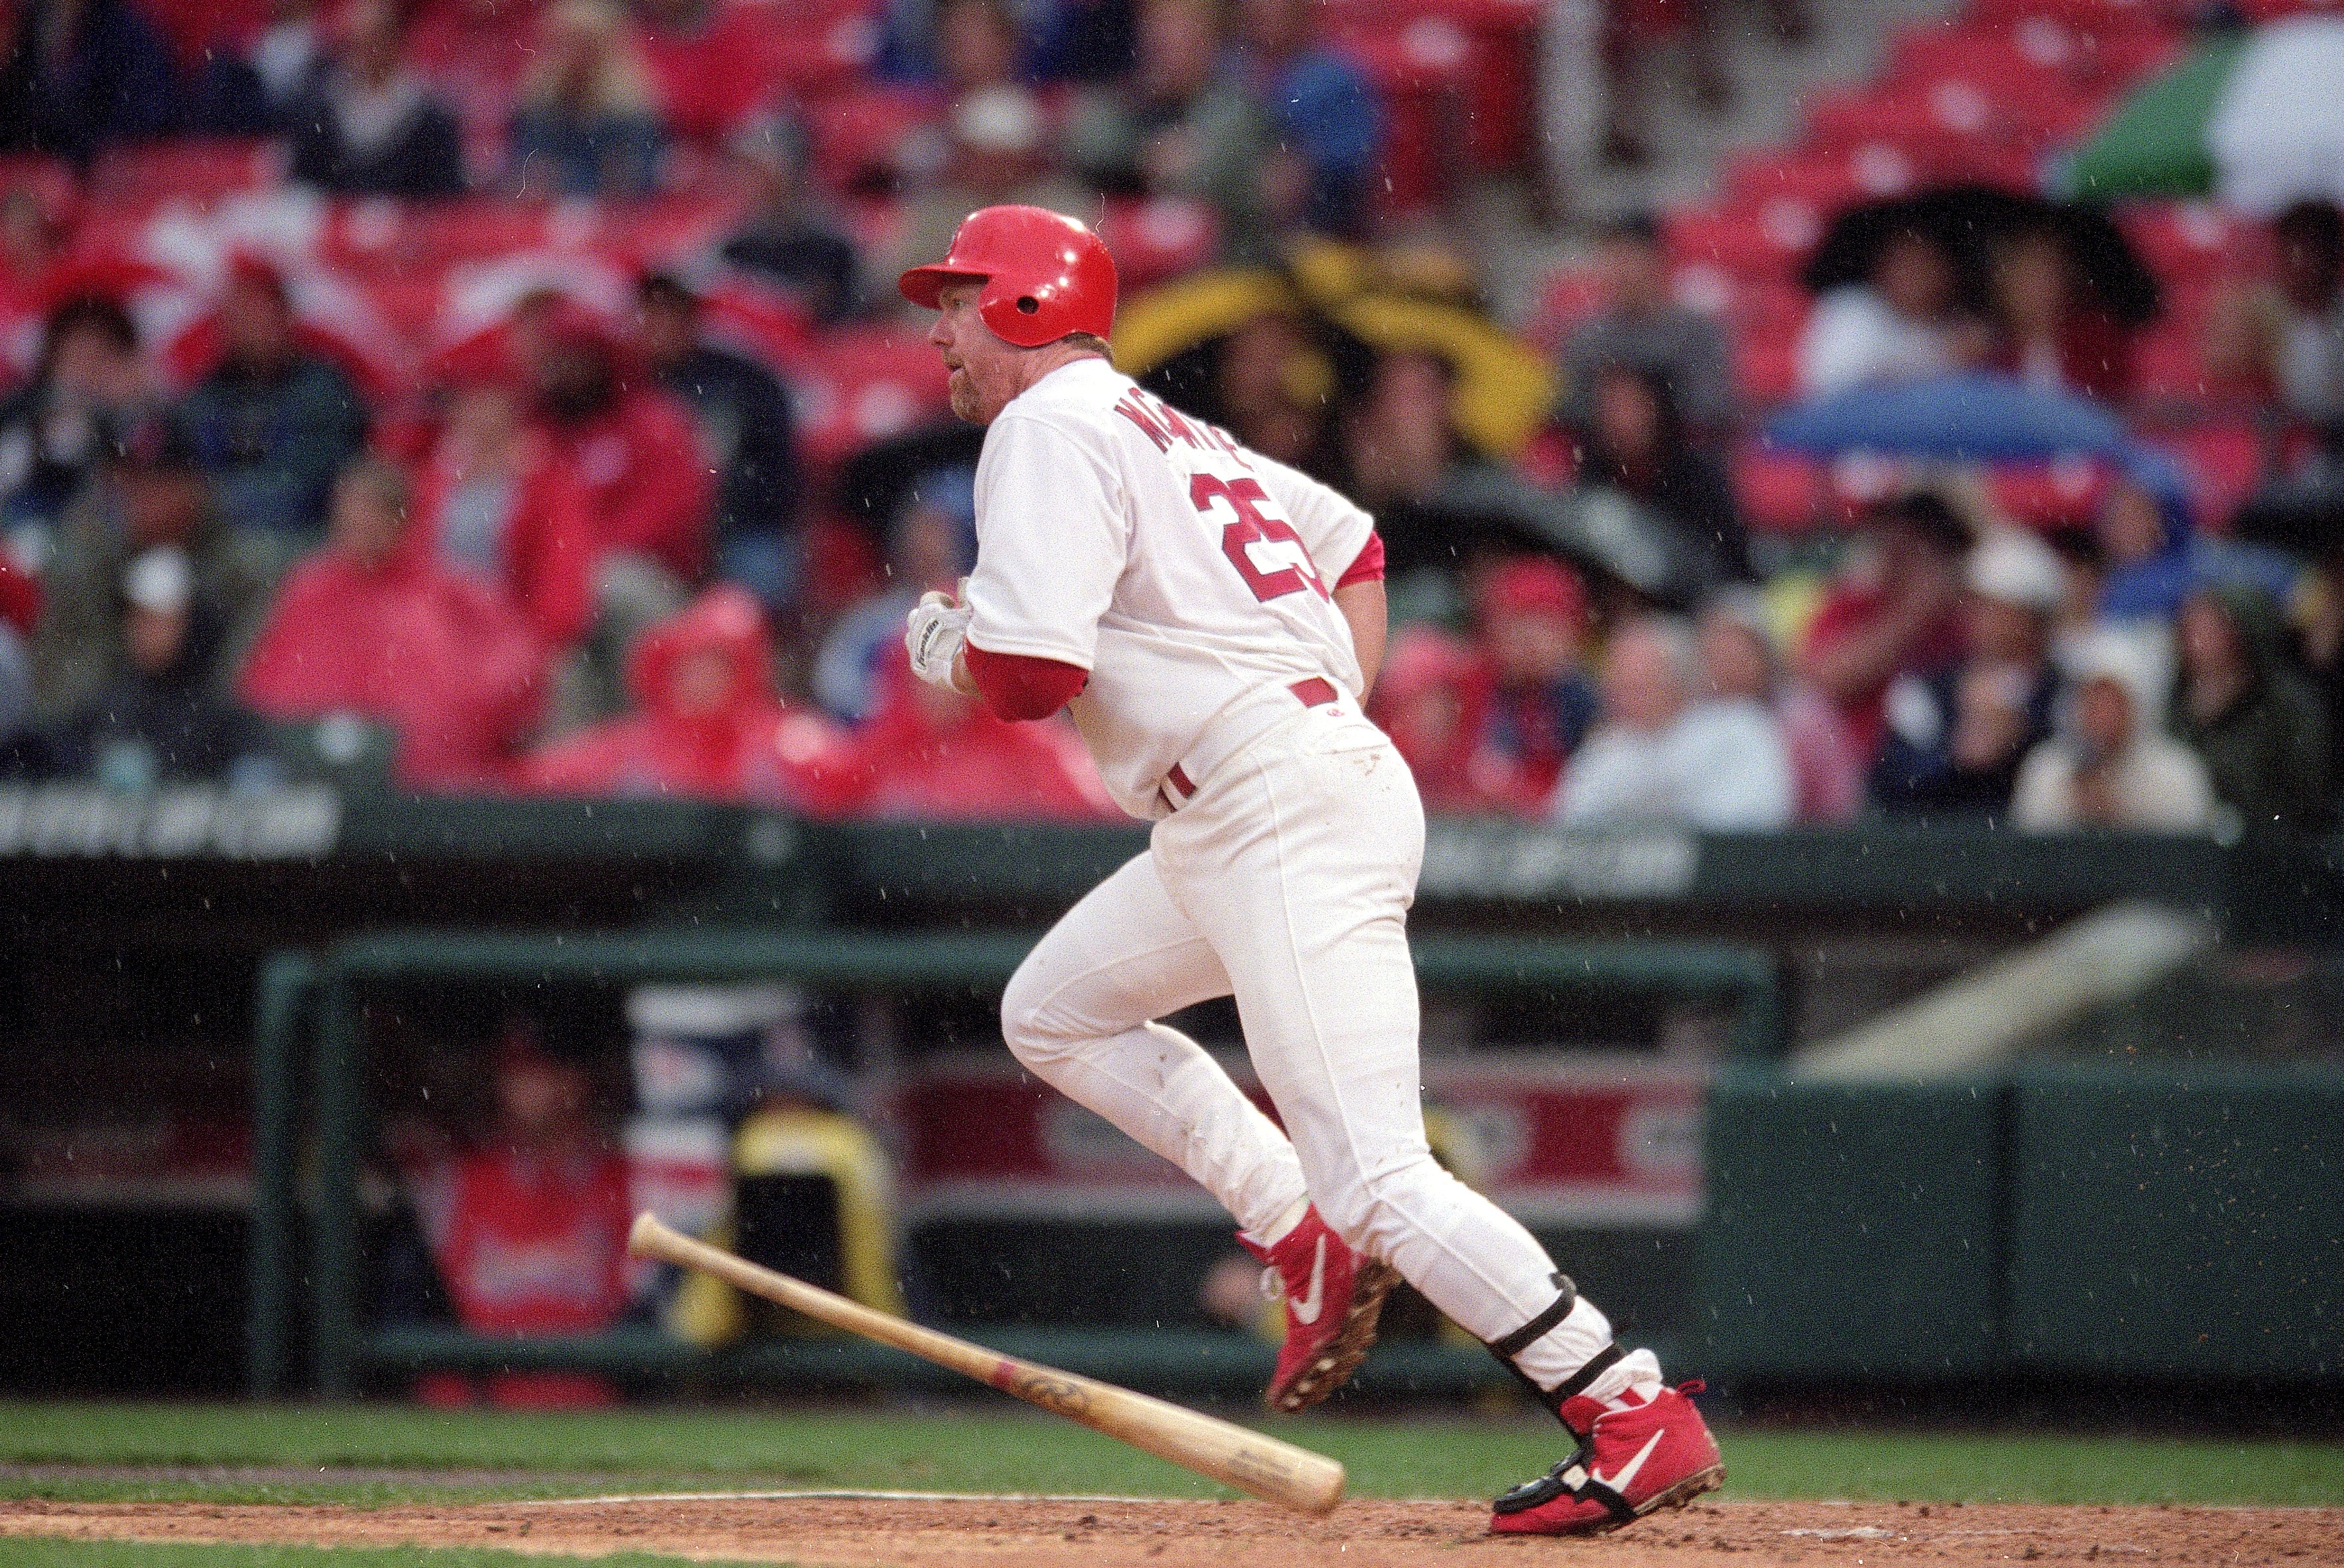 23 Apr 2000:  Mark McGwire #25 of the St. Louis Cardinals in action during the game against the Colorado Rockies at Busch Stadium in St. Louis, Missouri. The Cardinals defeated the Rockies 6-3. Mandatory Credit: Elsa Hasch  /Allsport